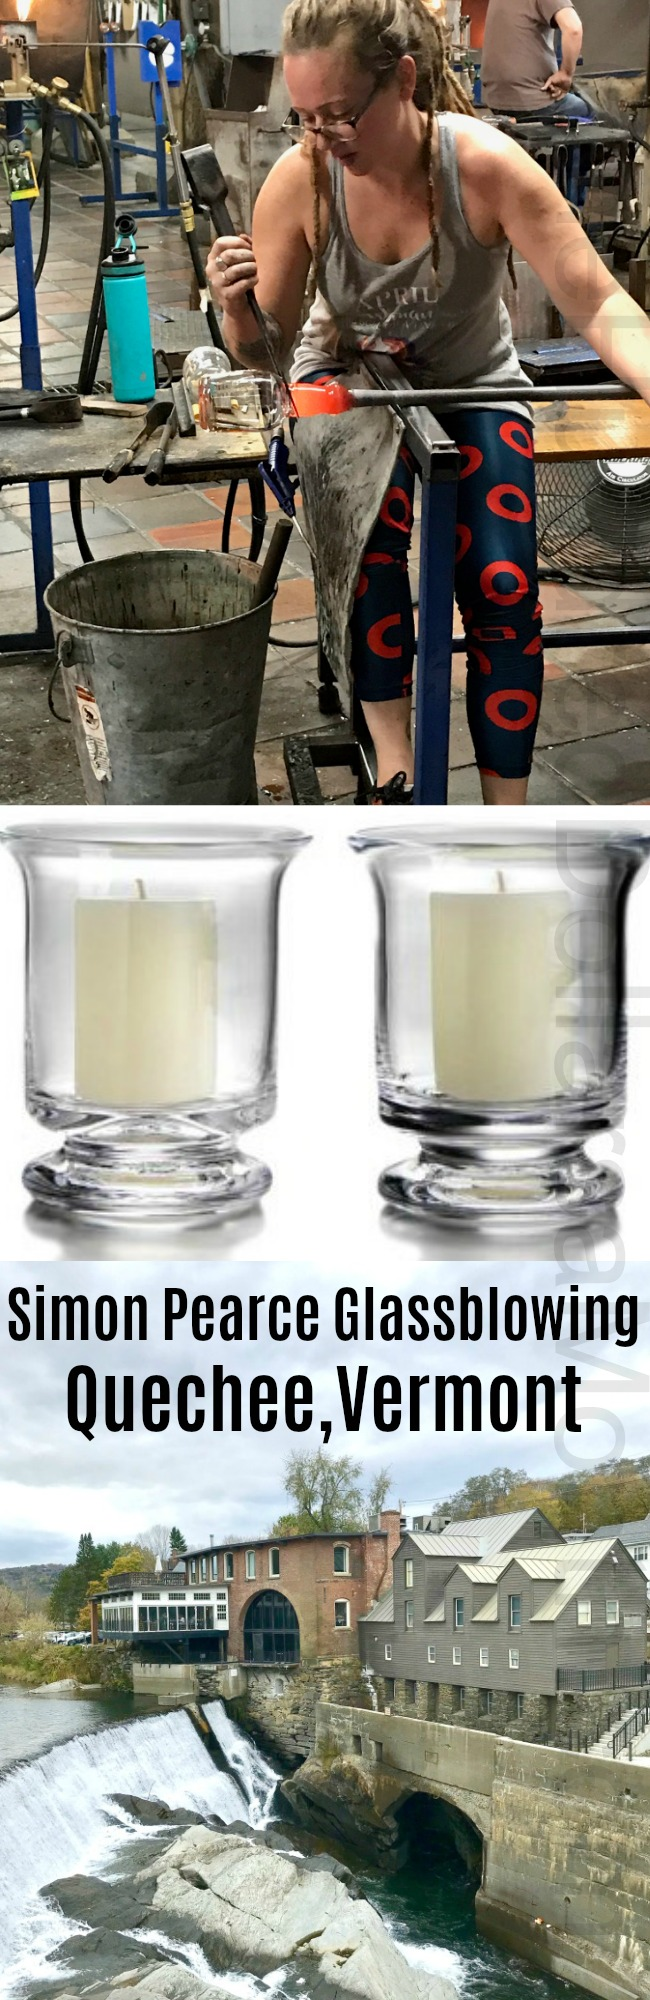 Simon Pearce Flagship Store, Restaurant + Glassblowing Workshop in Quechee, Vermont